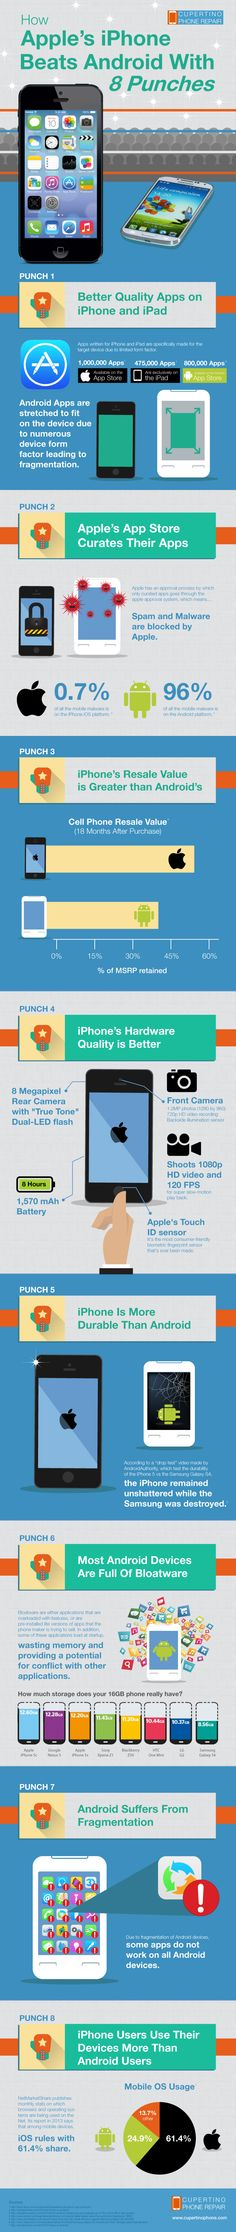 How Apple's iPhone Beats Android With 8 Punches #Infographic #iphone #Android